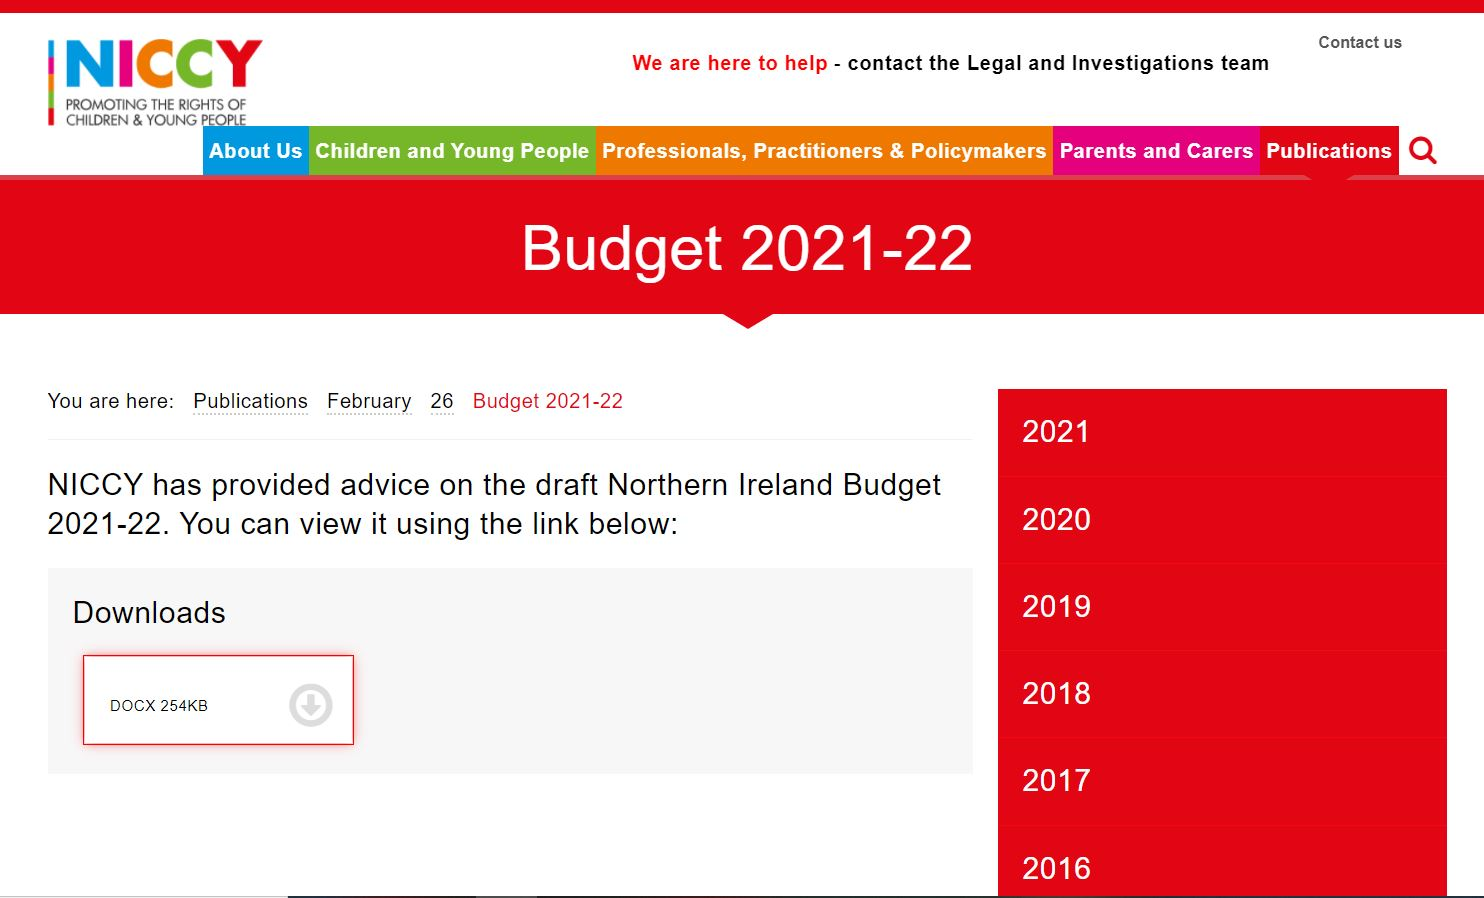 Image of Budget 2021-22